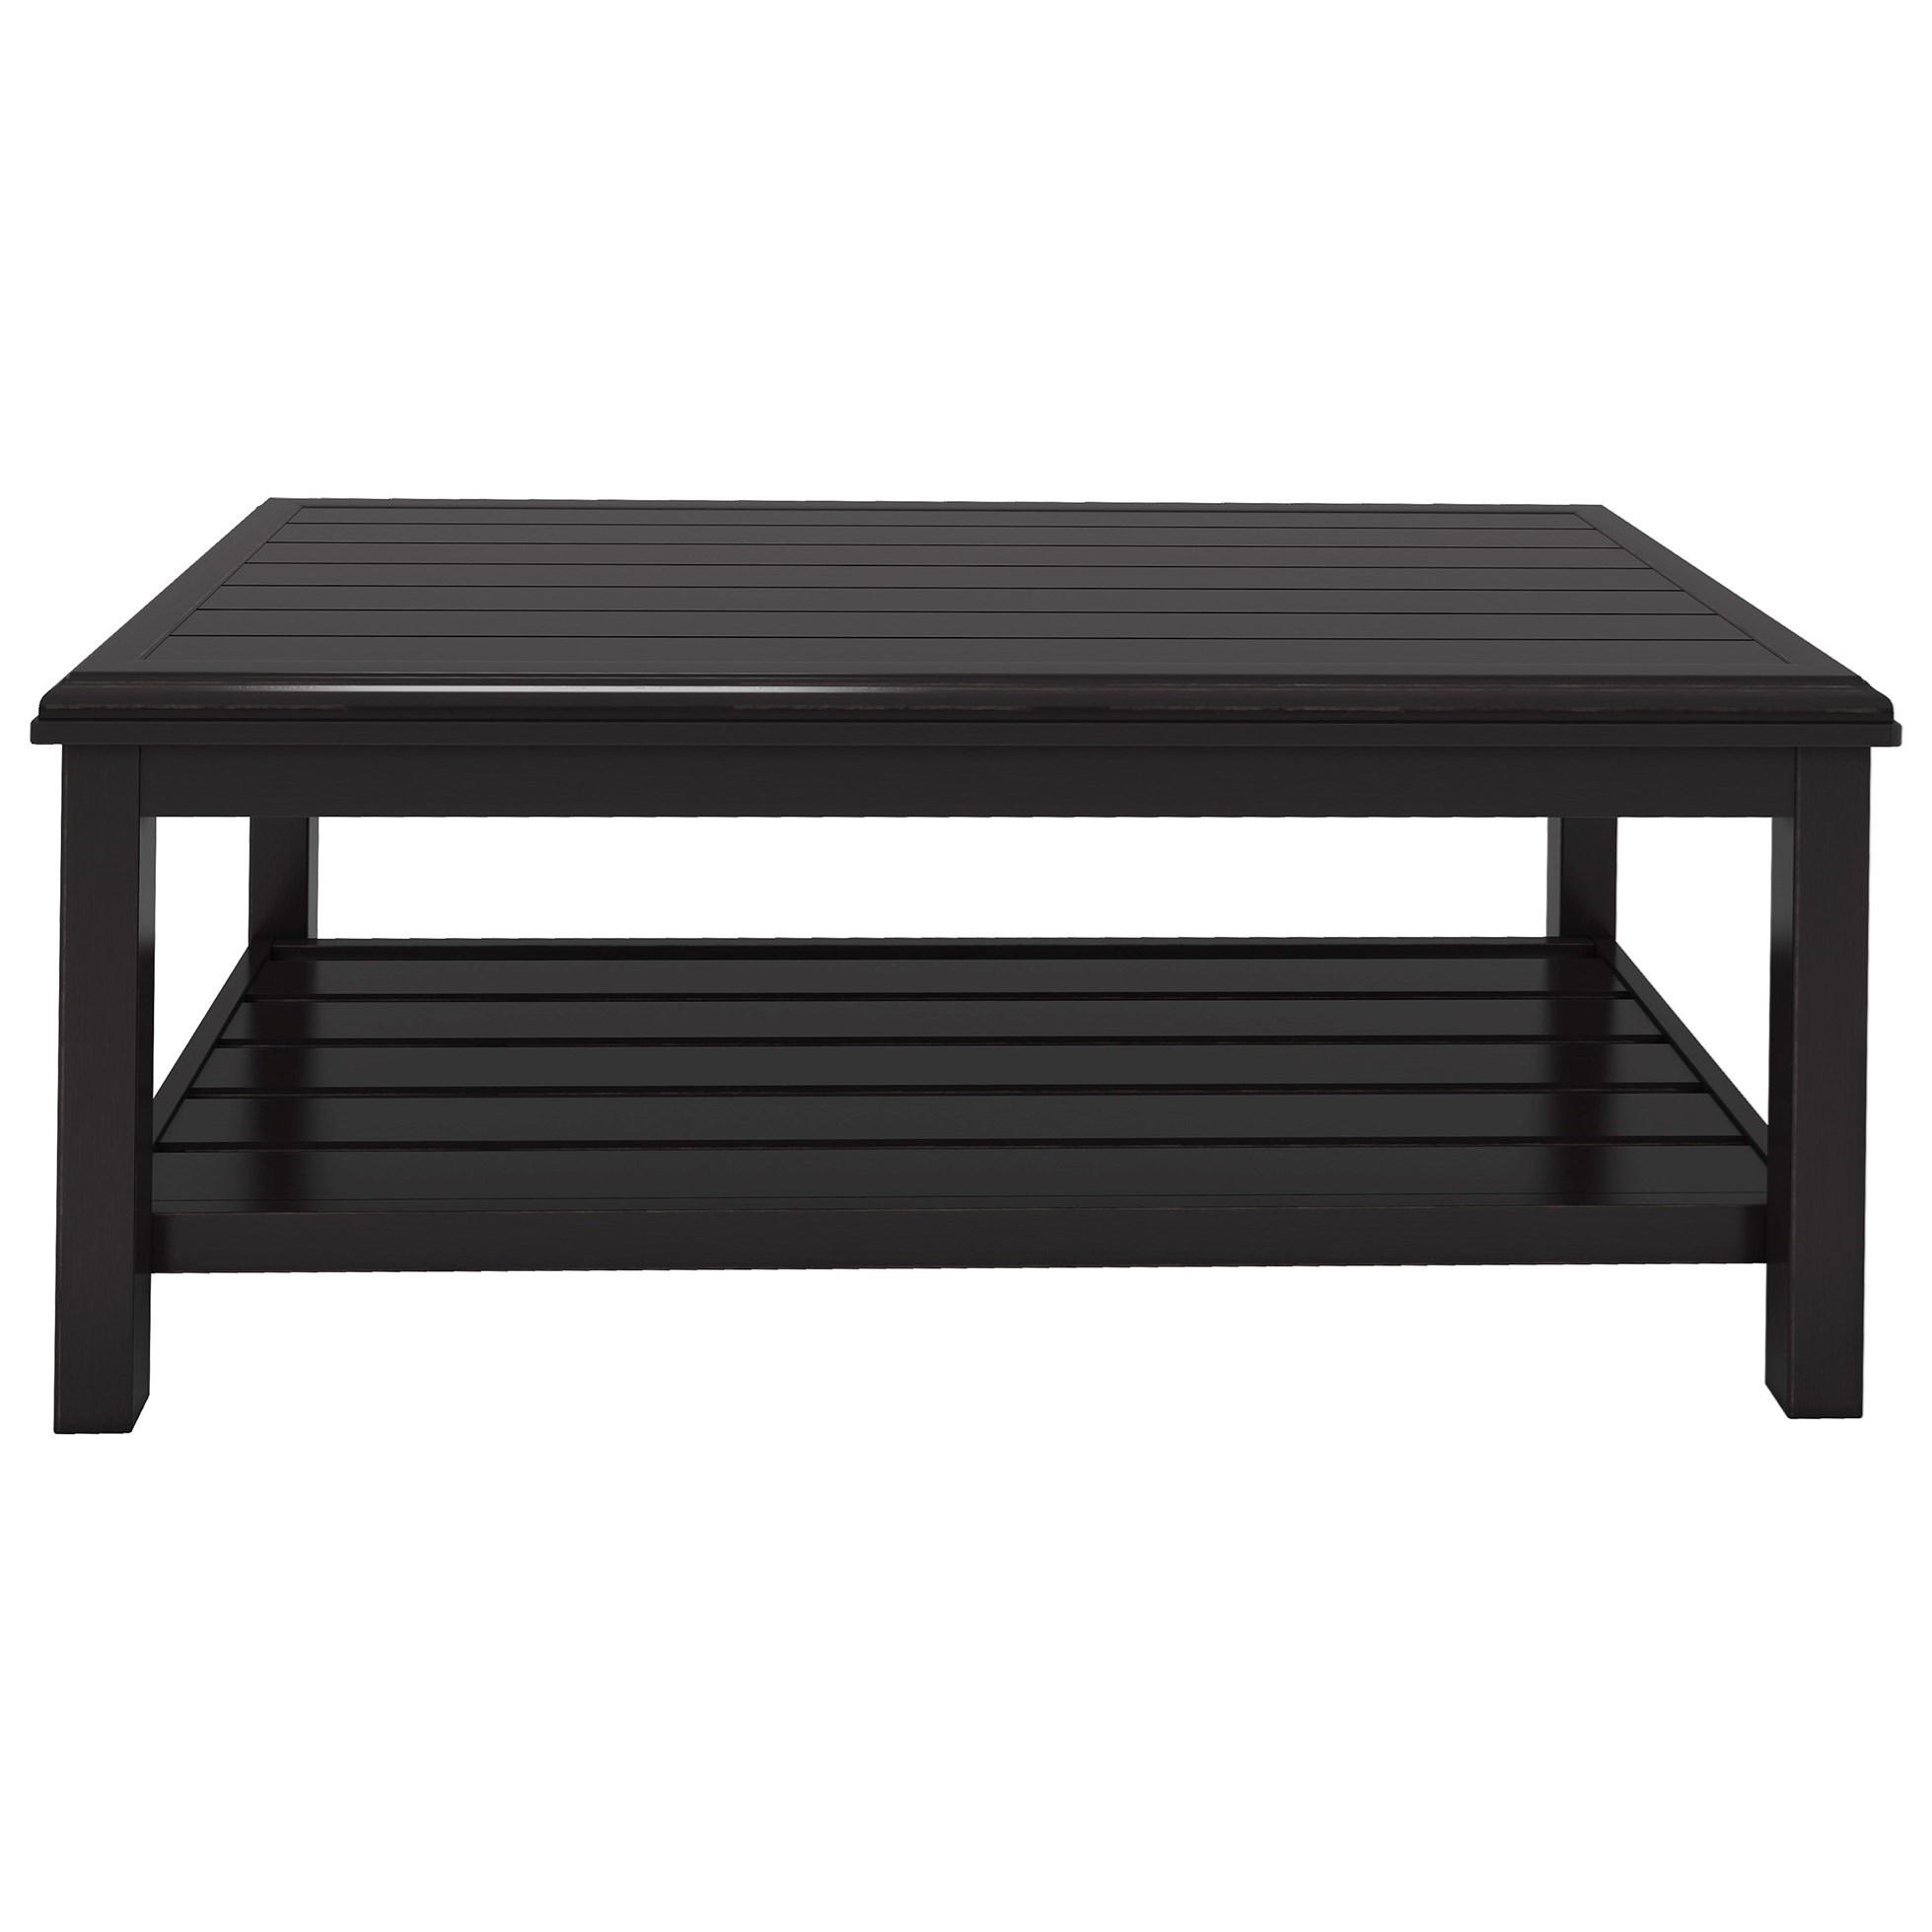 Castle Island Rectangular Cocktail Table by Signature at Walker's Furniture